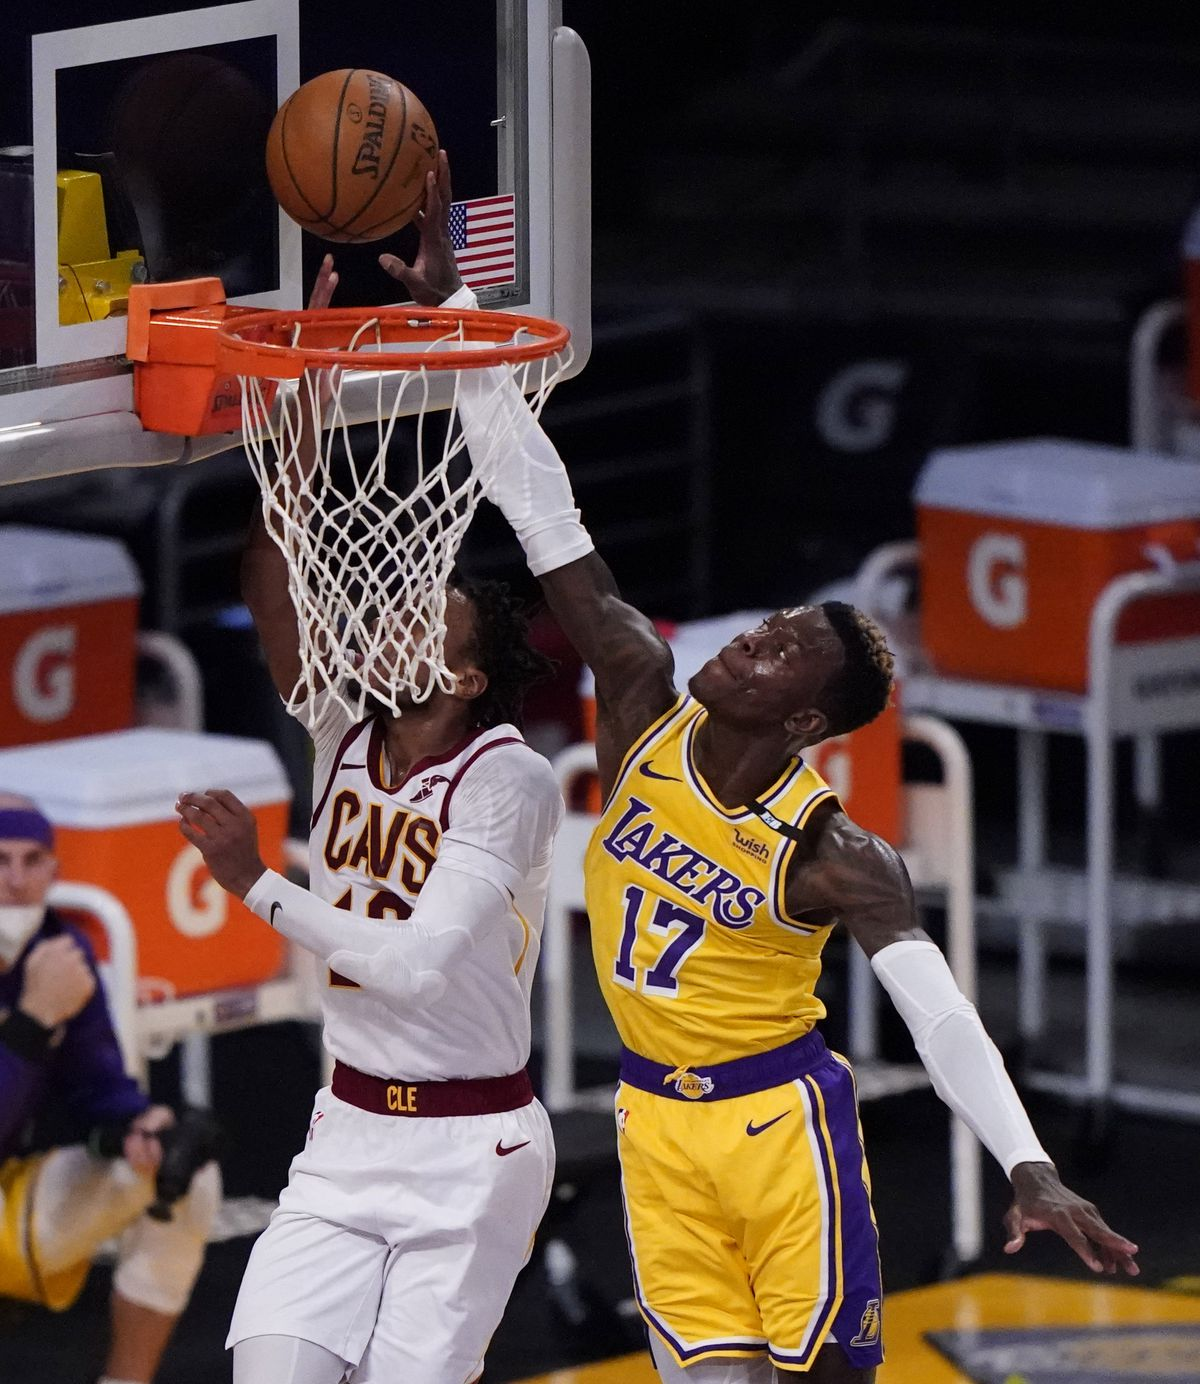 Los Angeles Lakers defeat the Cleveland Cavaliers 100-86 during an NBA basketball game.